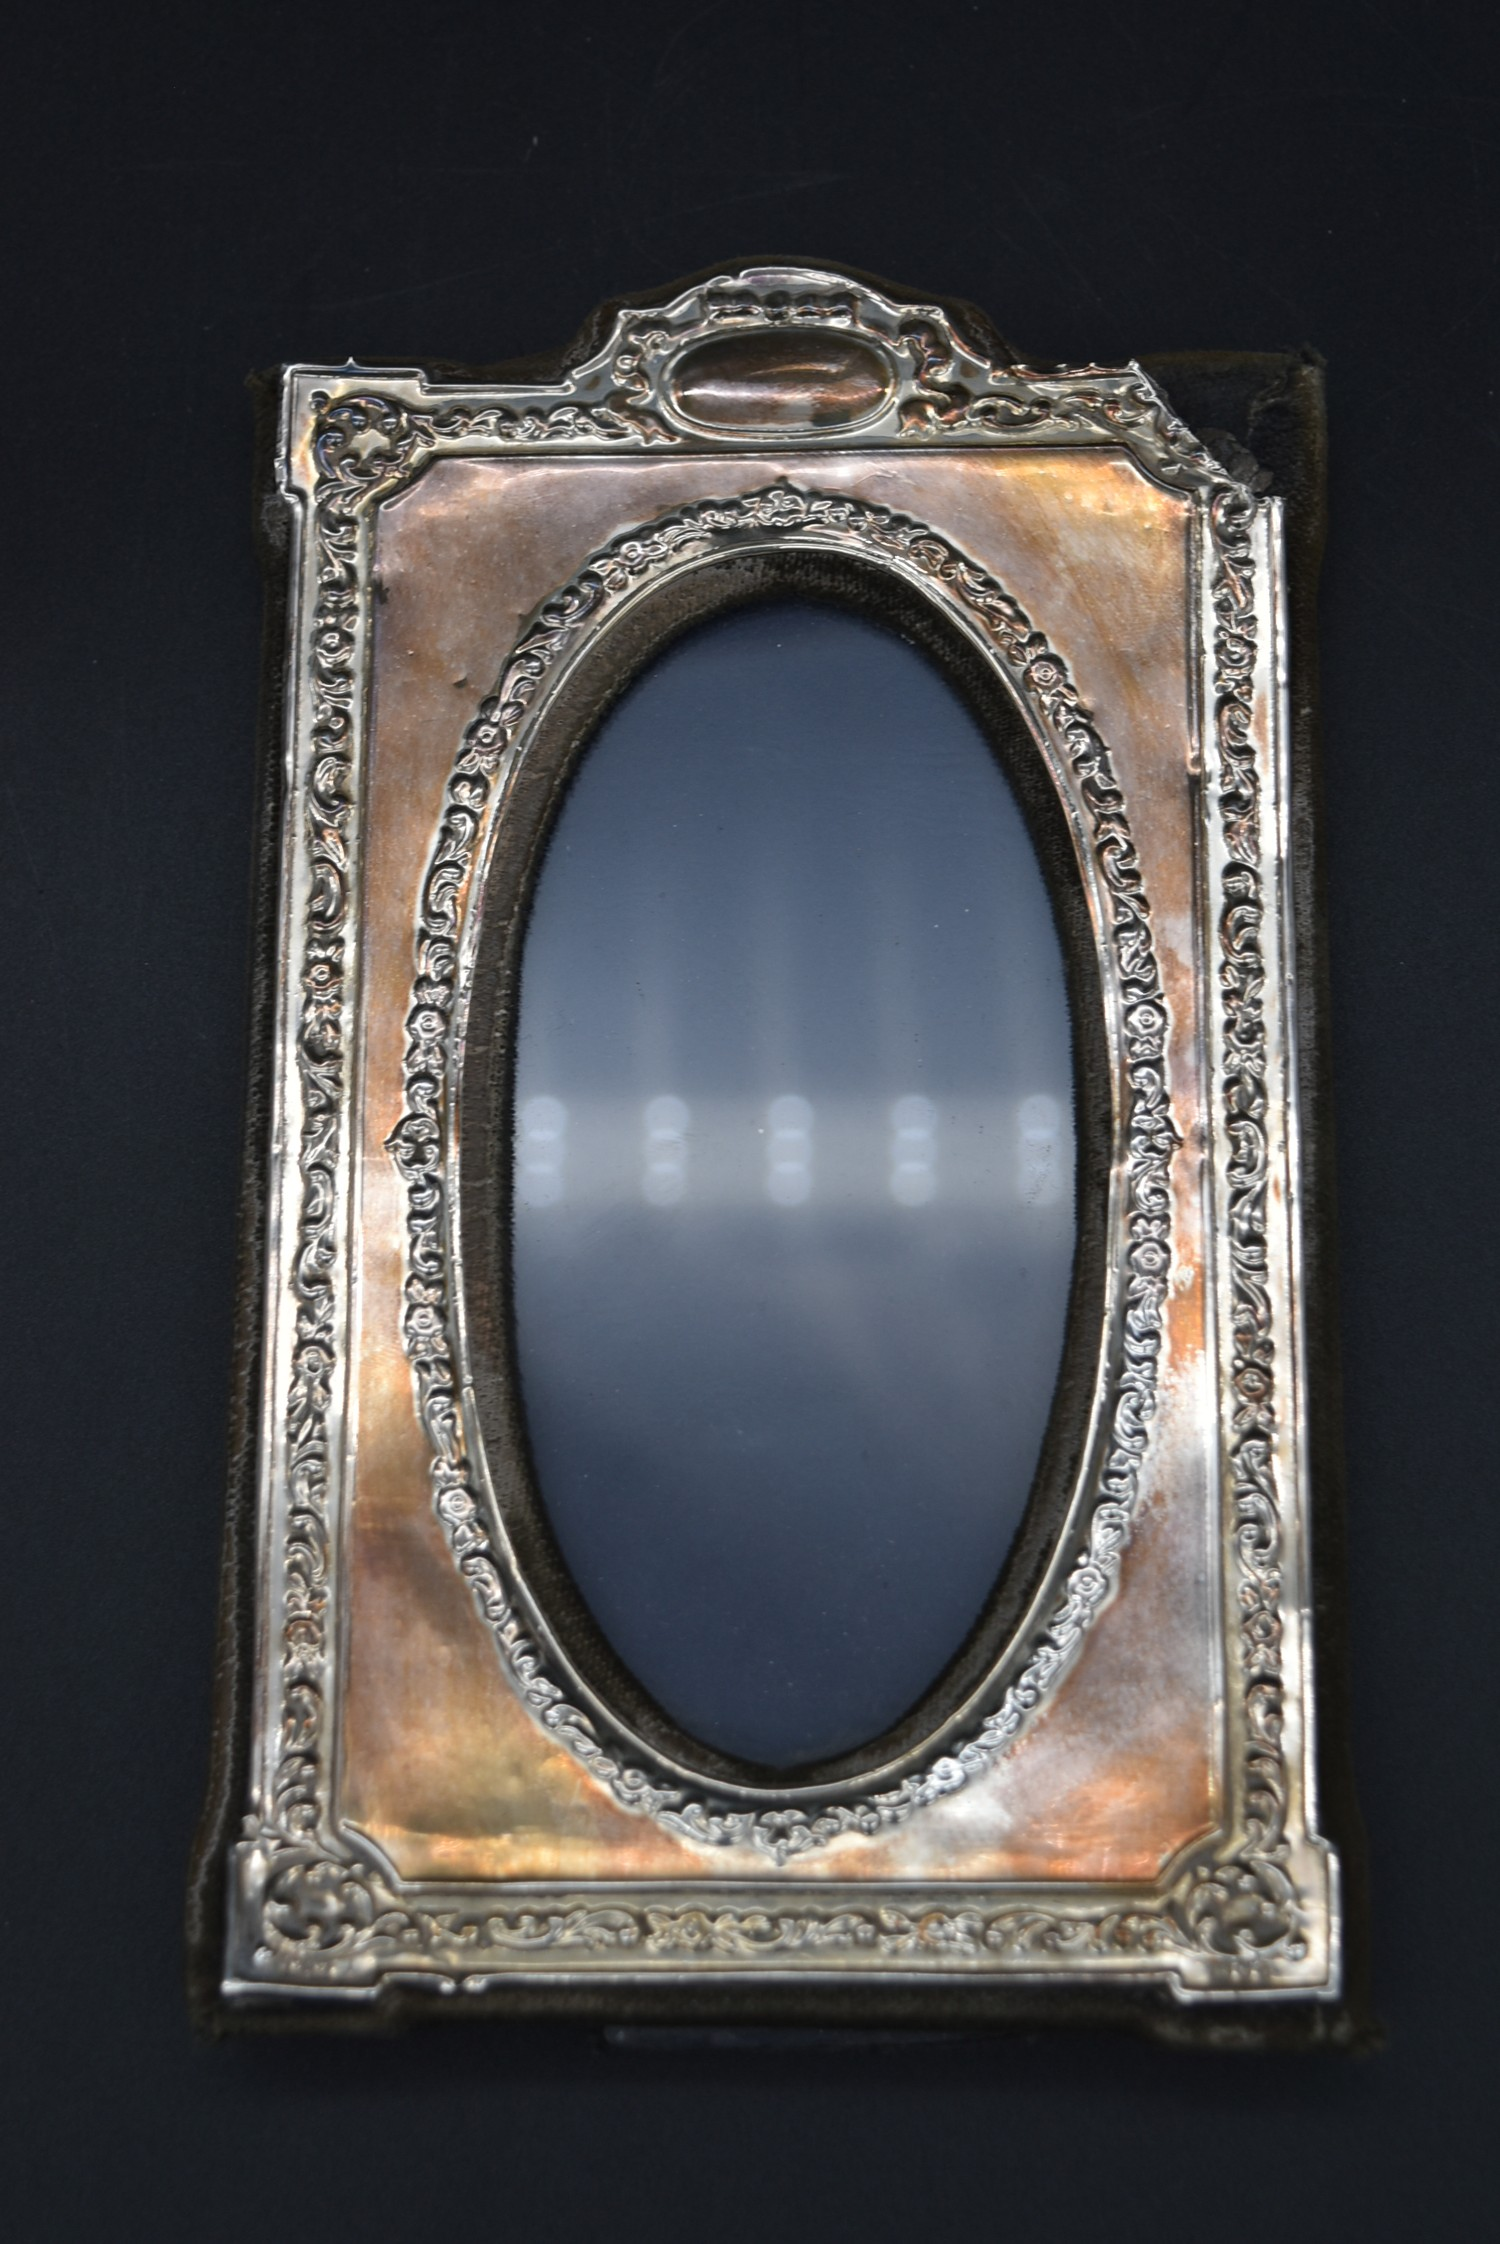 A miscellaneous collection of silver framed easel mirrors, various English hallmarks. H.20cm W. - Image 9 of 13